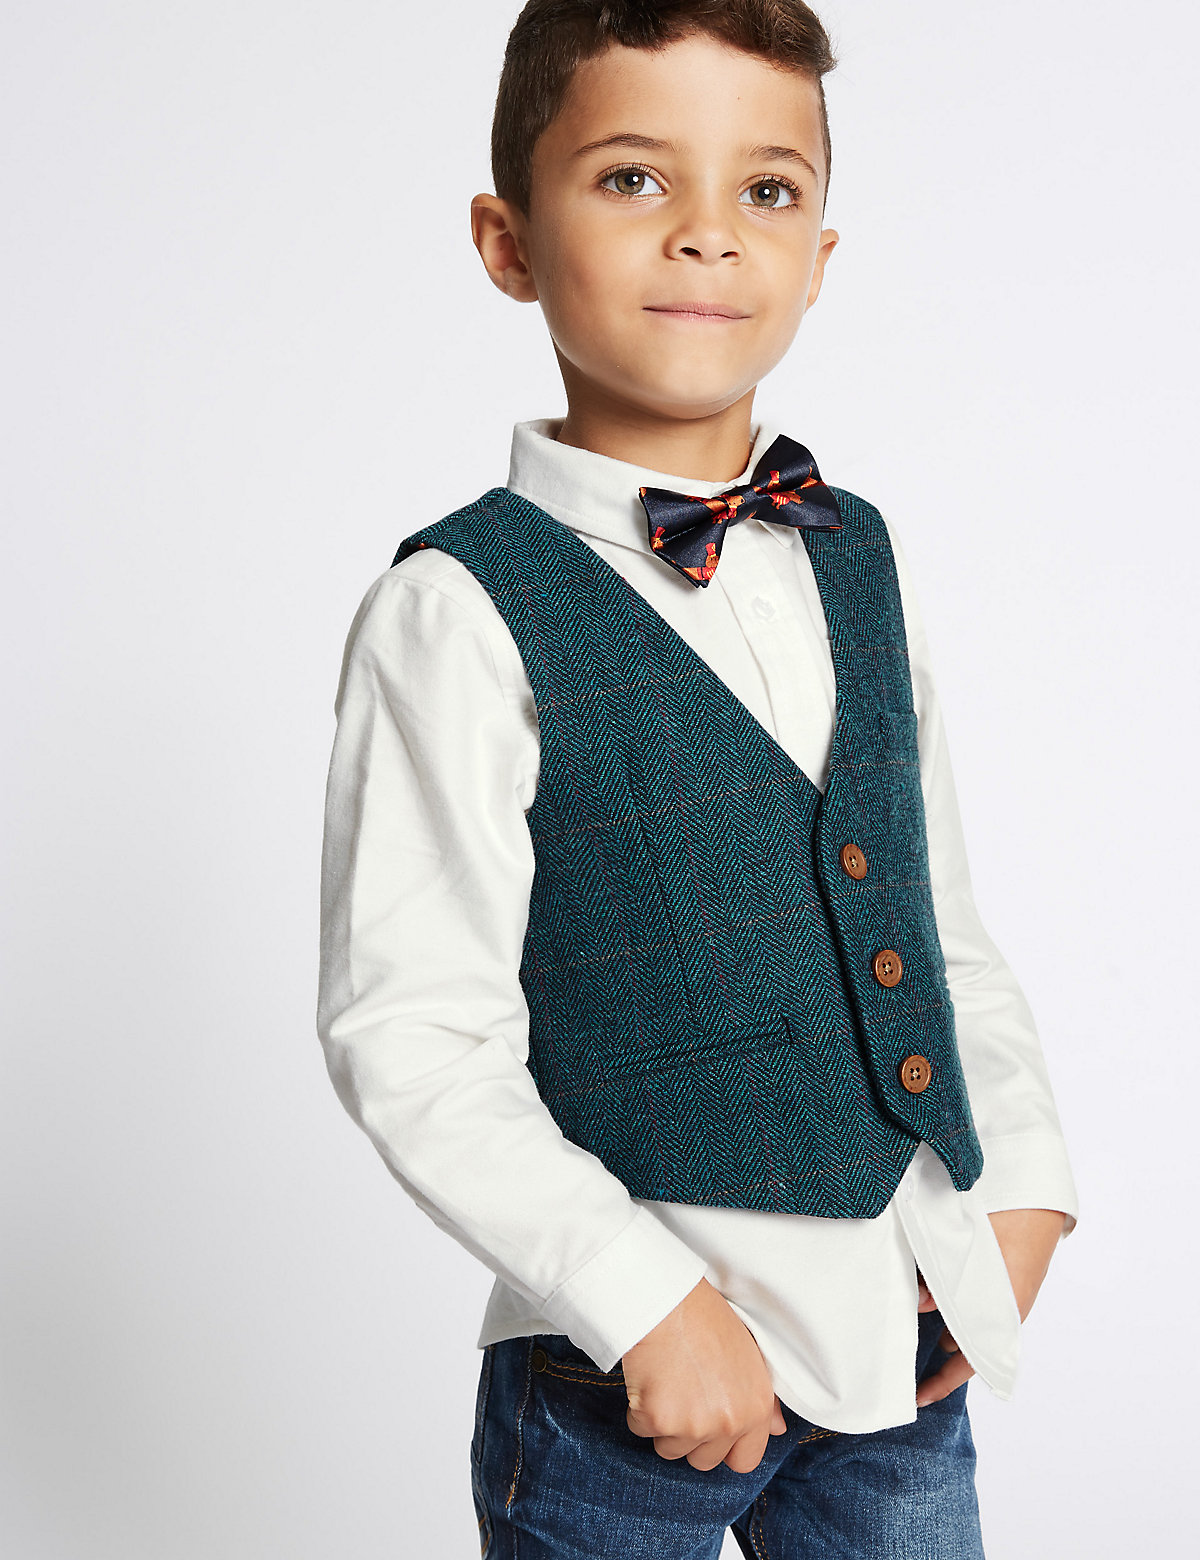 3 Piece Waistcoat & Shirt with Bow Tie (3 Months - 6 Years)